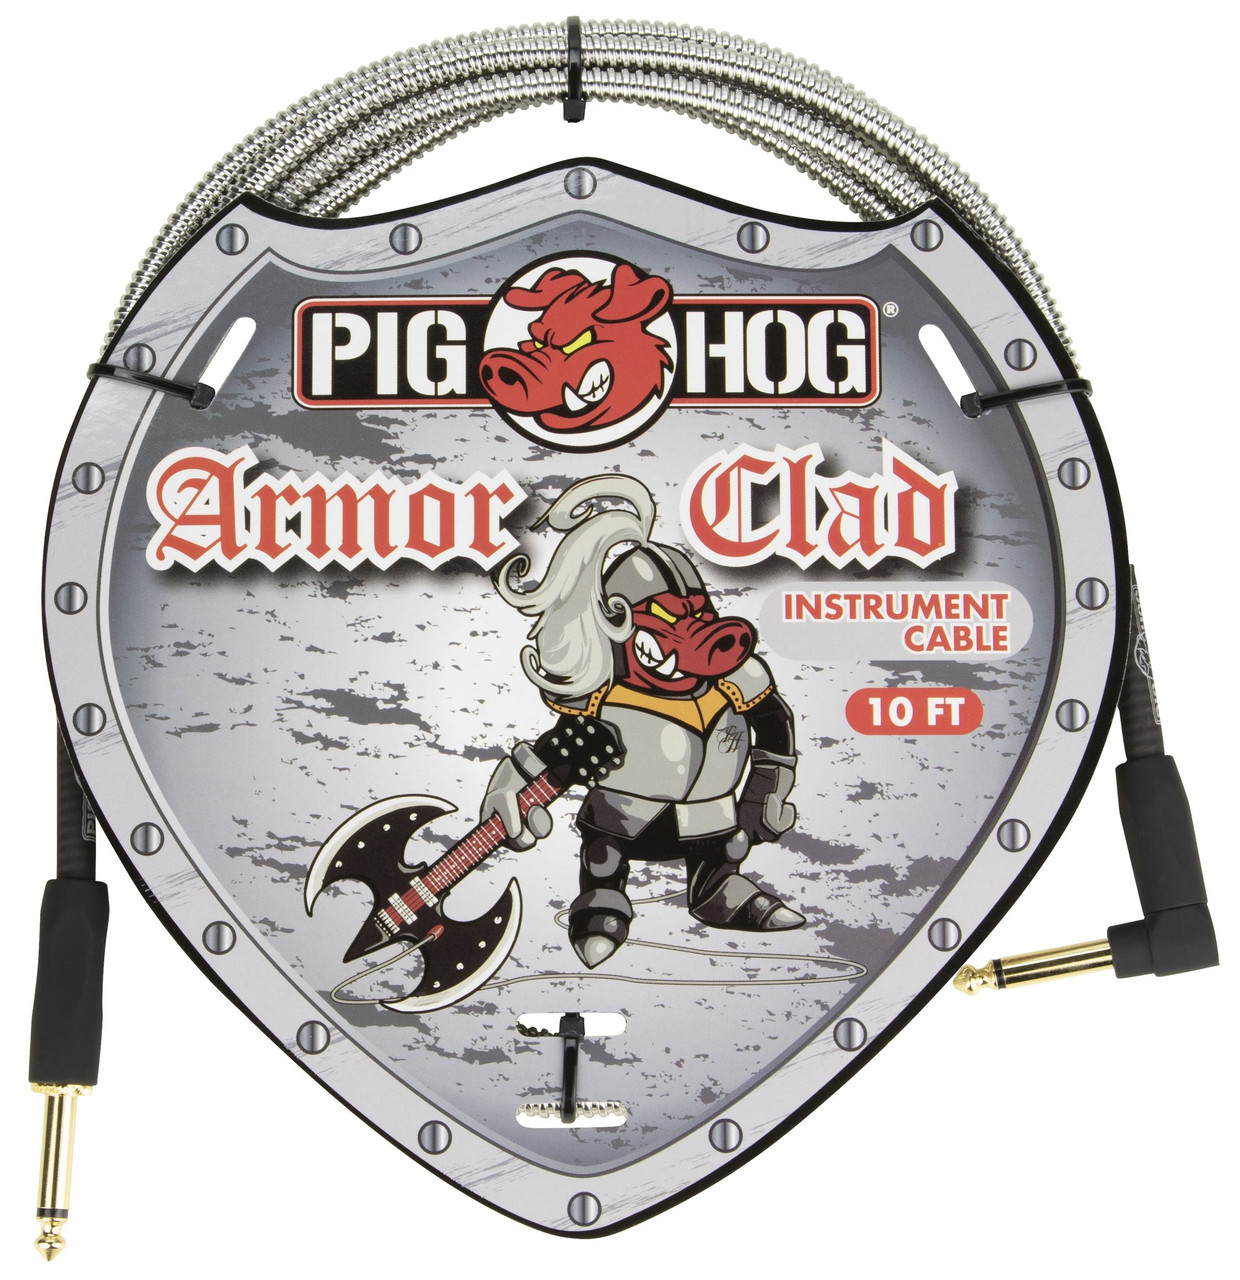 10ft Pig Hog PHAC-10R Armor Clad 1/4 Inch Right Angle Instrument Cable